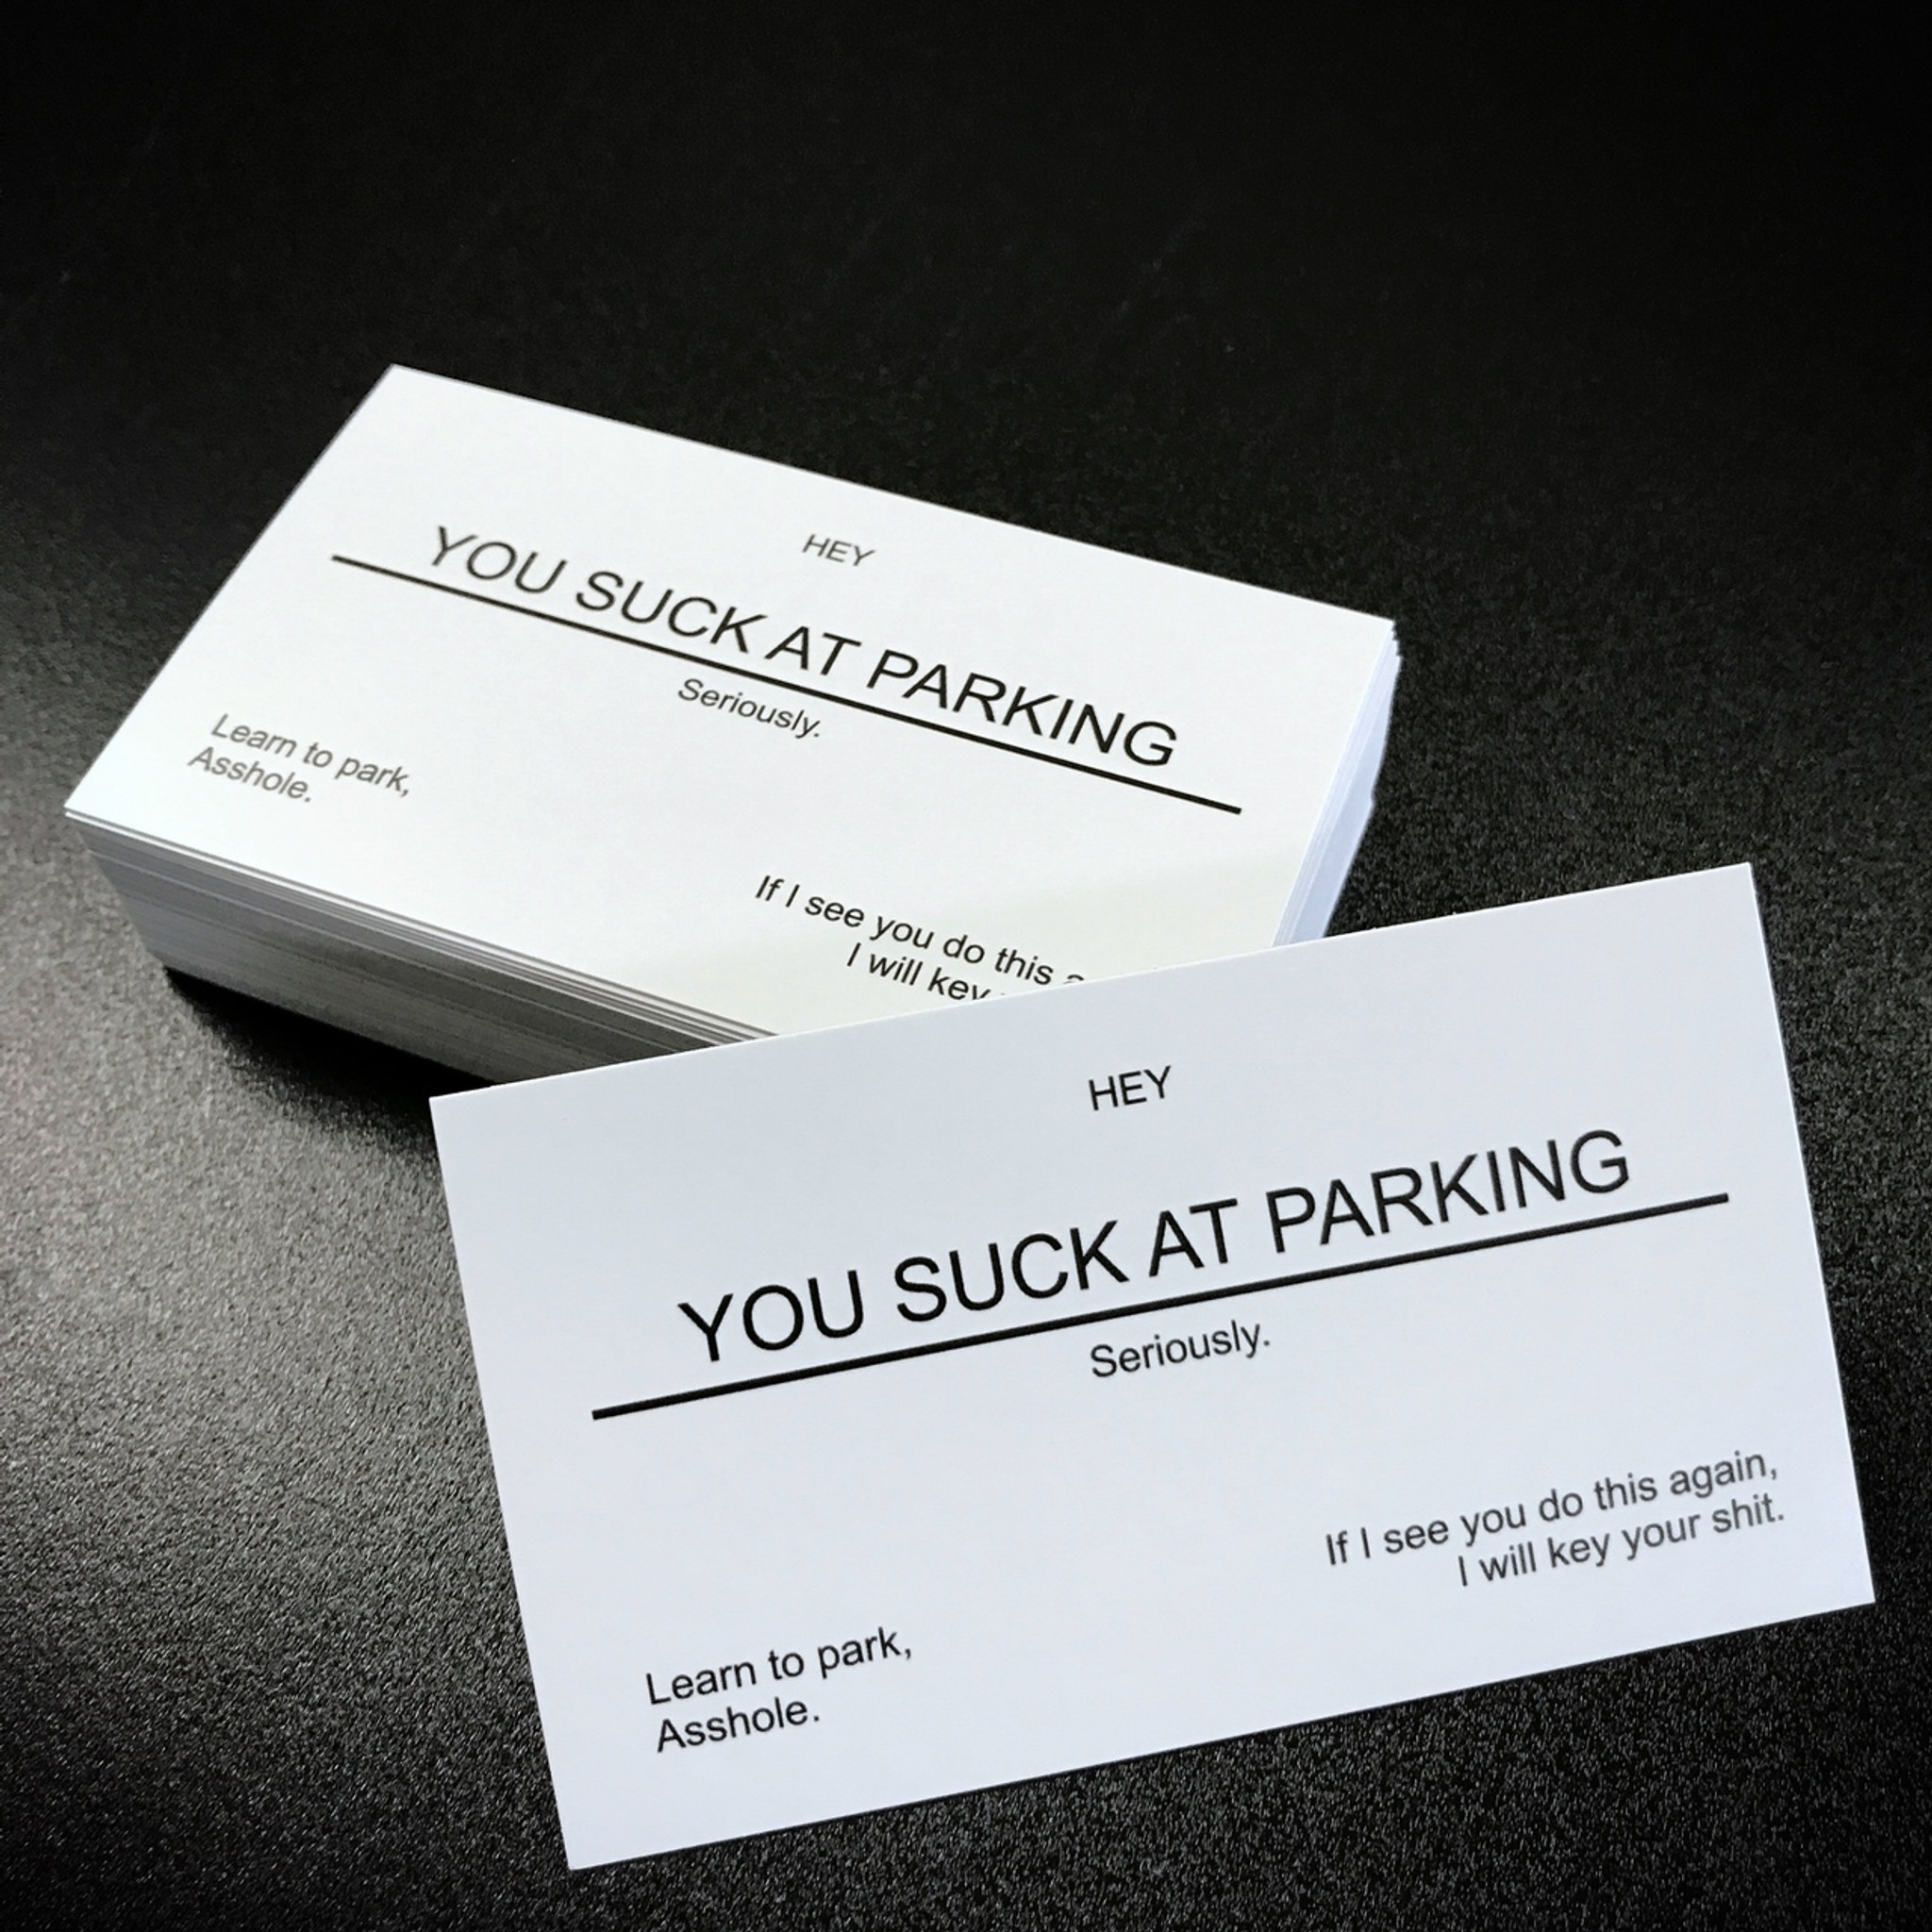 YOU SUCK AT PARKING Business cards (10 pack) white